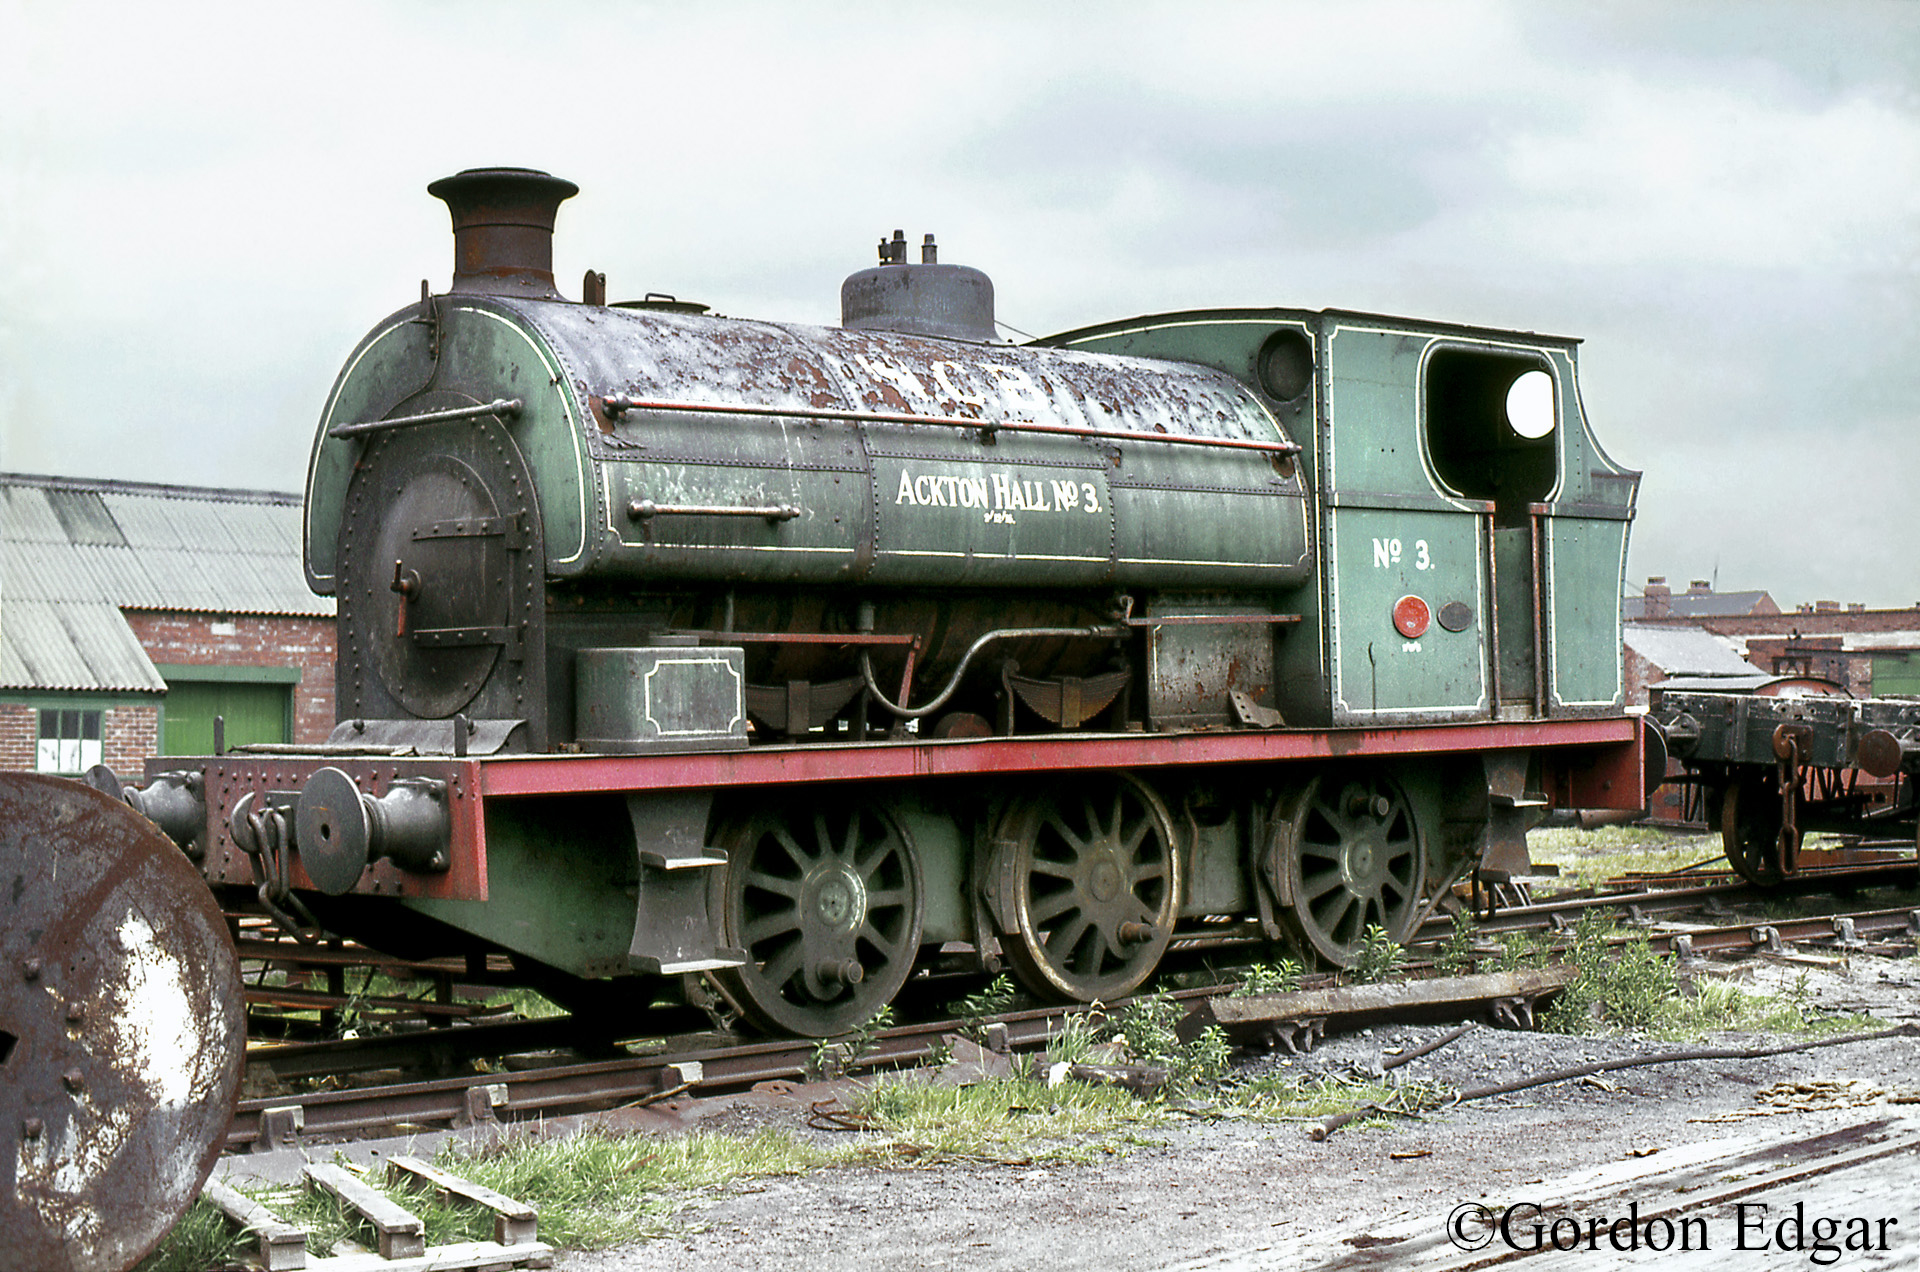 Peckett-1567-Ackton-Hall-Colliery - June 1972.jpg